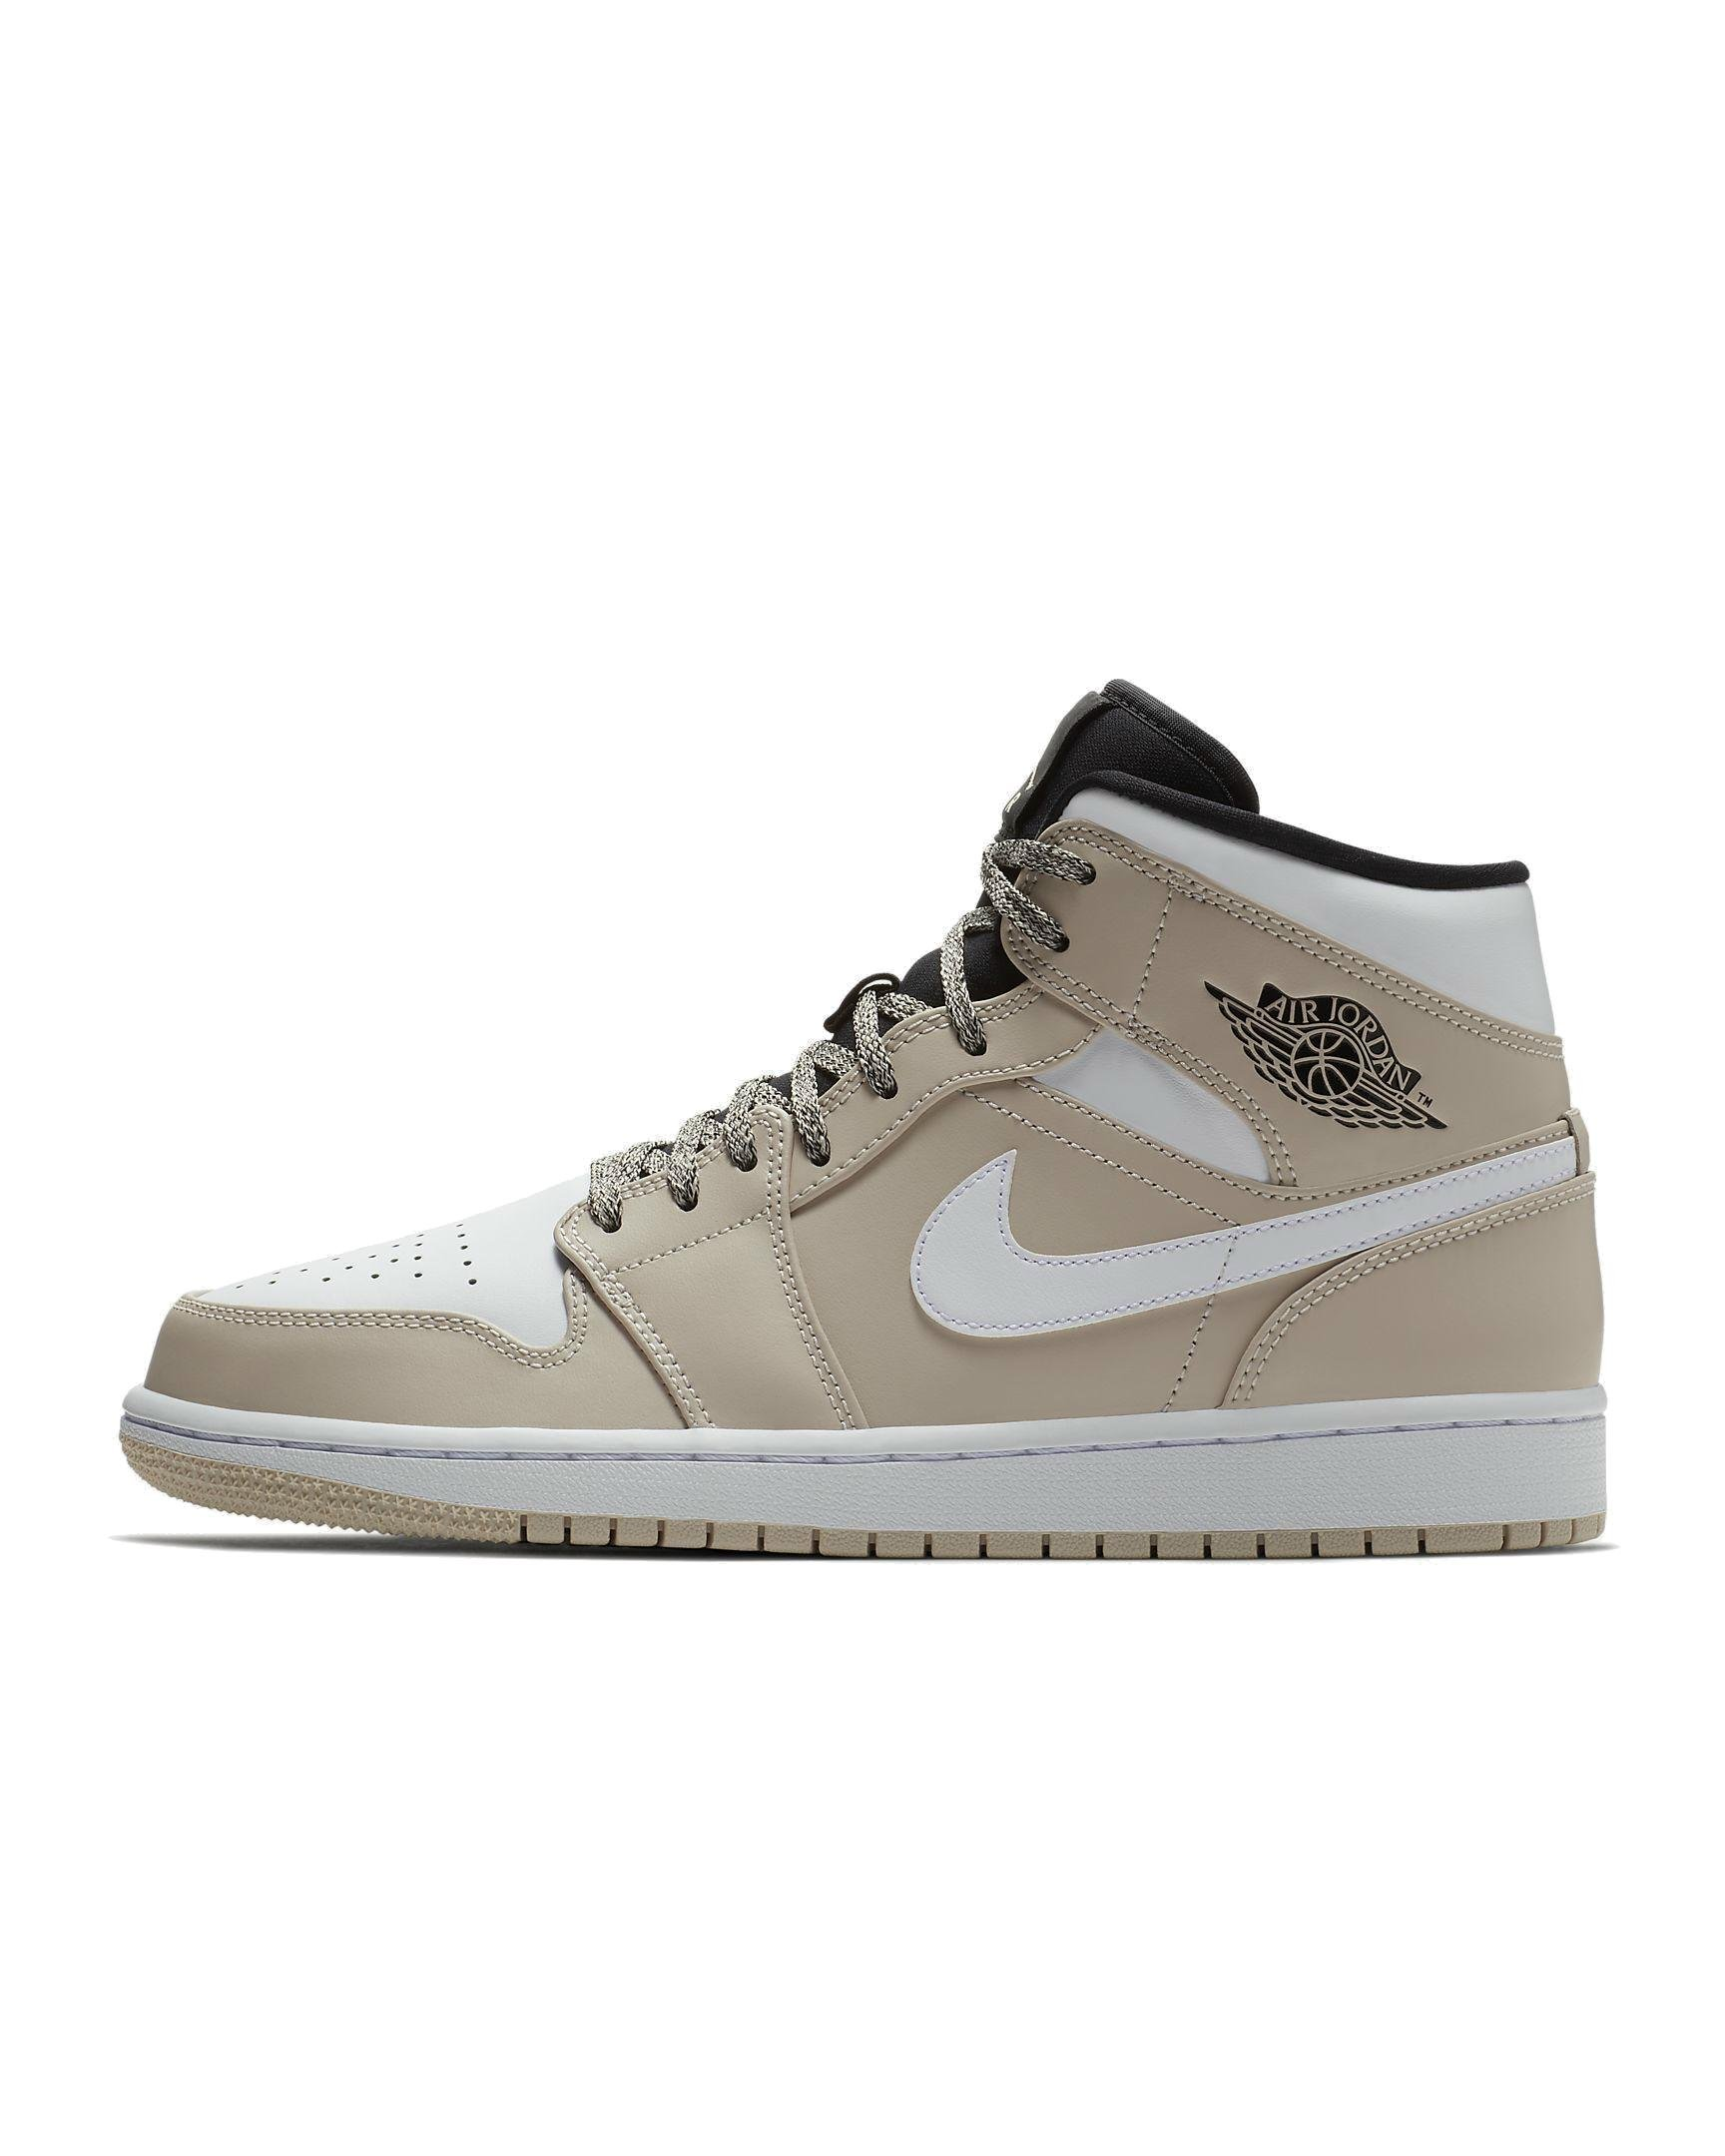 03942d9a85cc Galleon - NIKE Men s Air Jordan 1 Mid Shoe Desert Sand White Black (11.5  D(M) US)